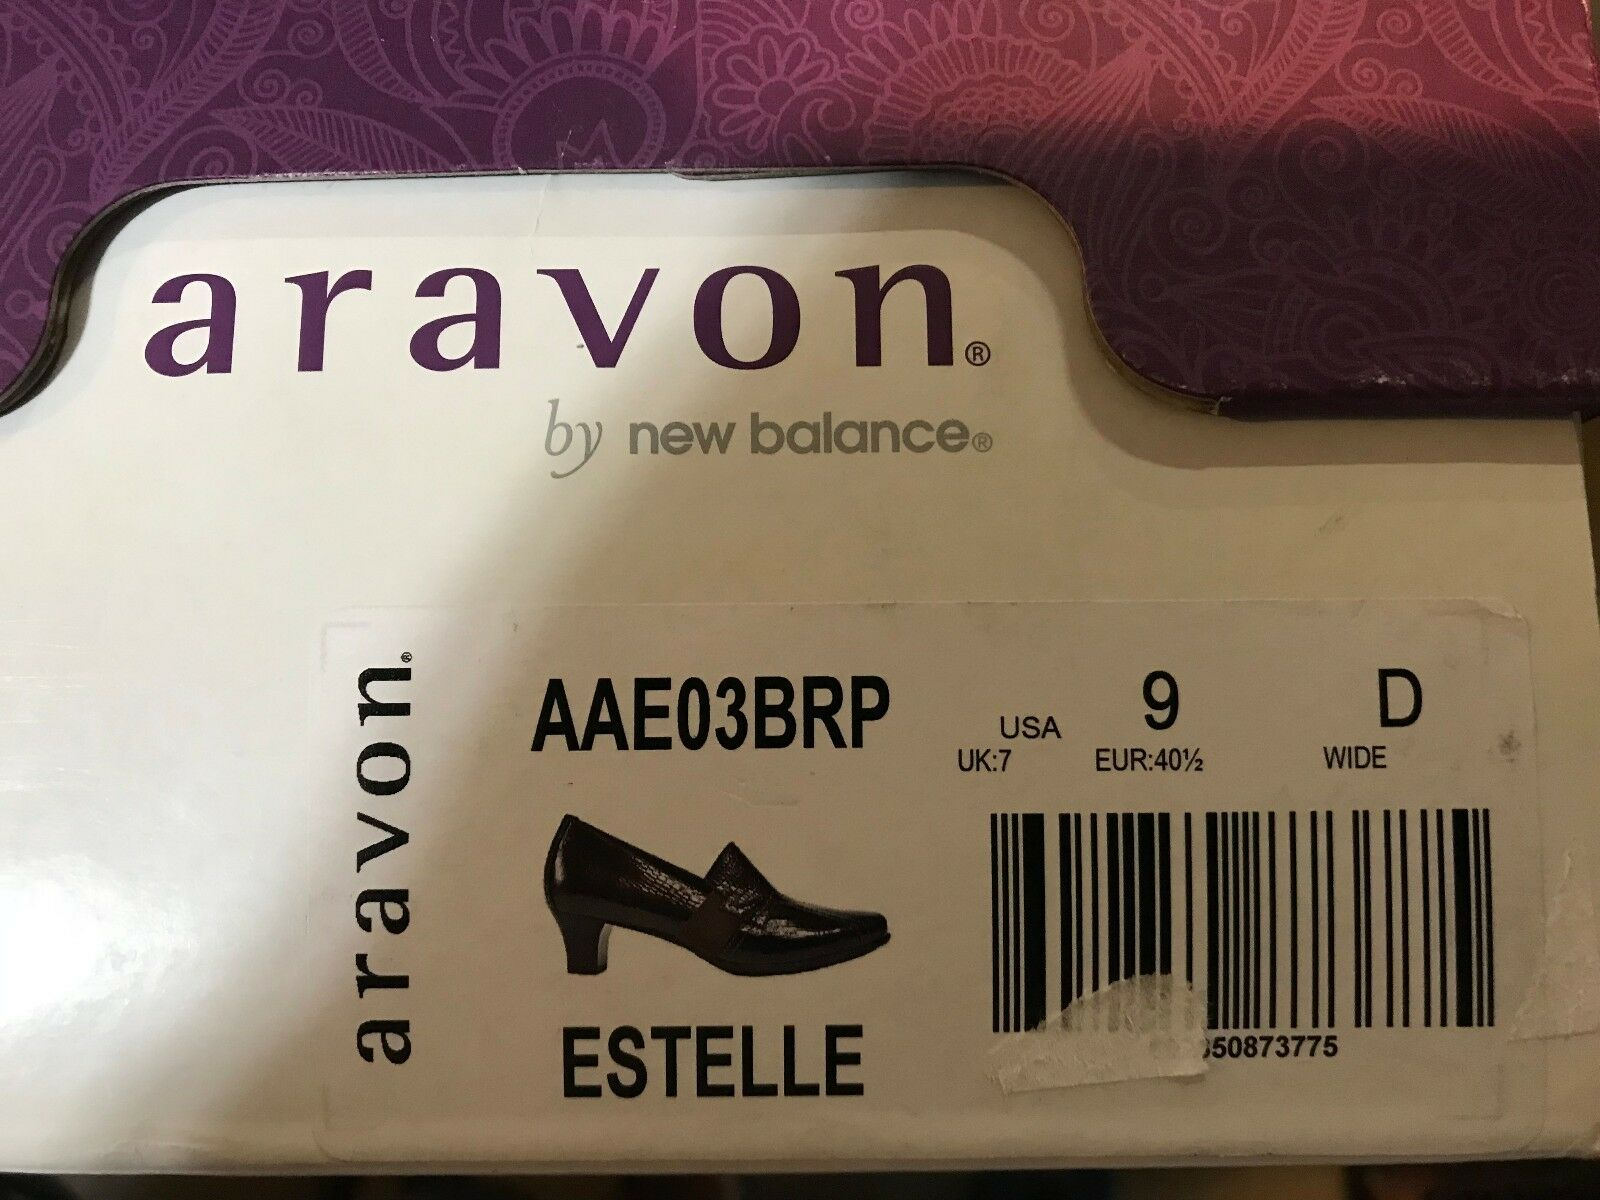 ARAVON, ESTELLE, Damenschuhe, BROWN LIZARD, LIZARD, LIZARD, US Größe 9 D WIDE NEW/DISPLAY 7c56bb